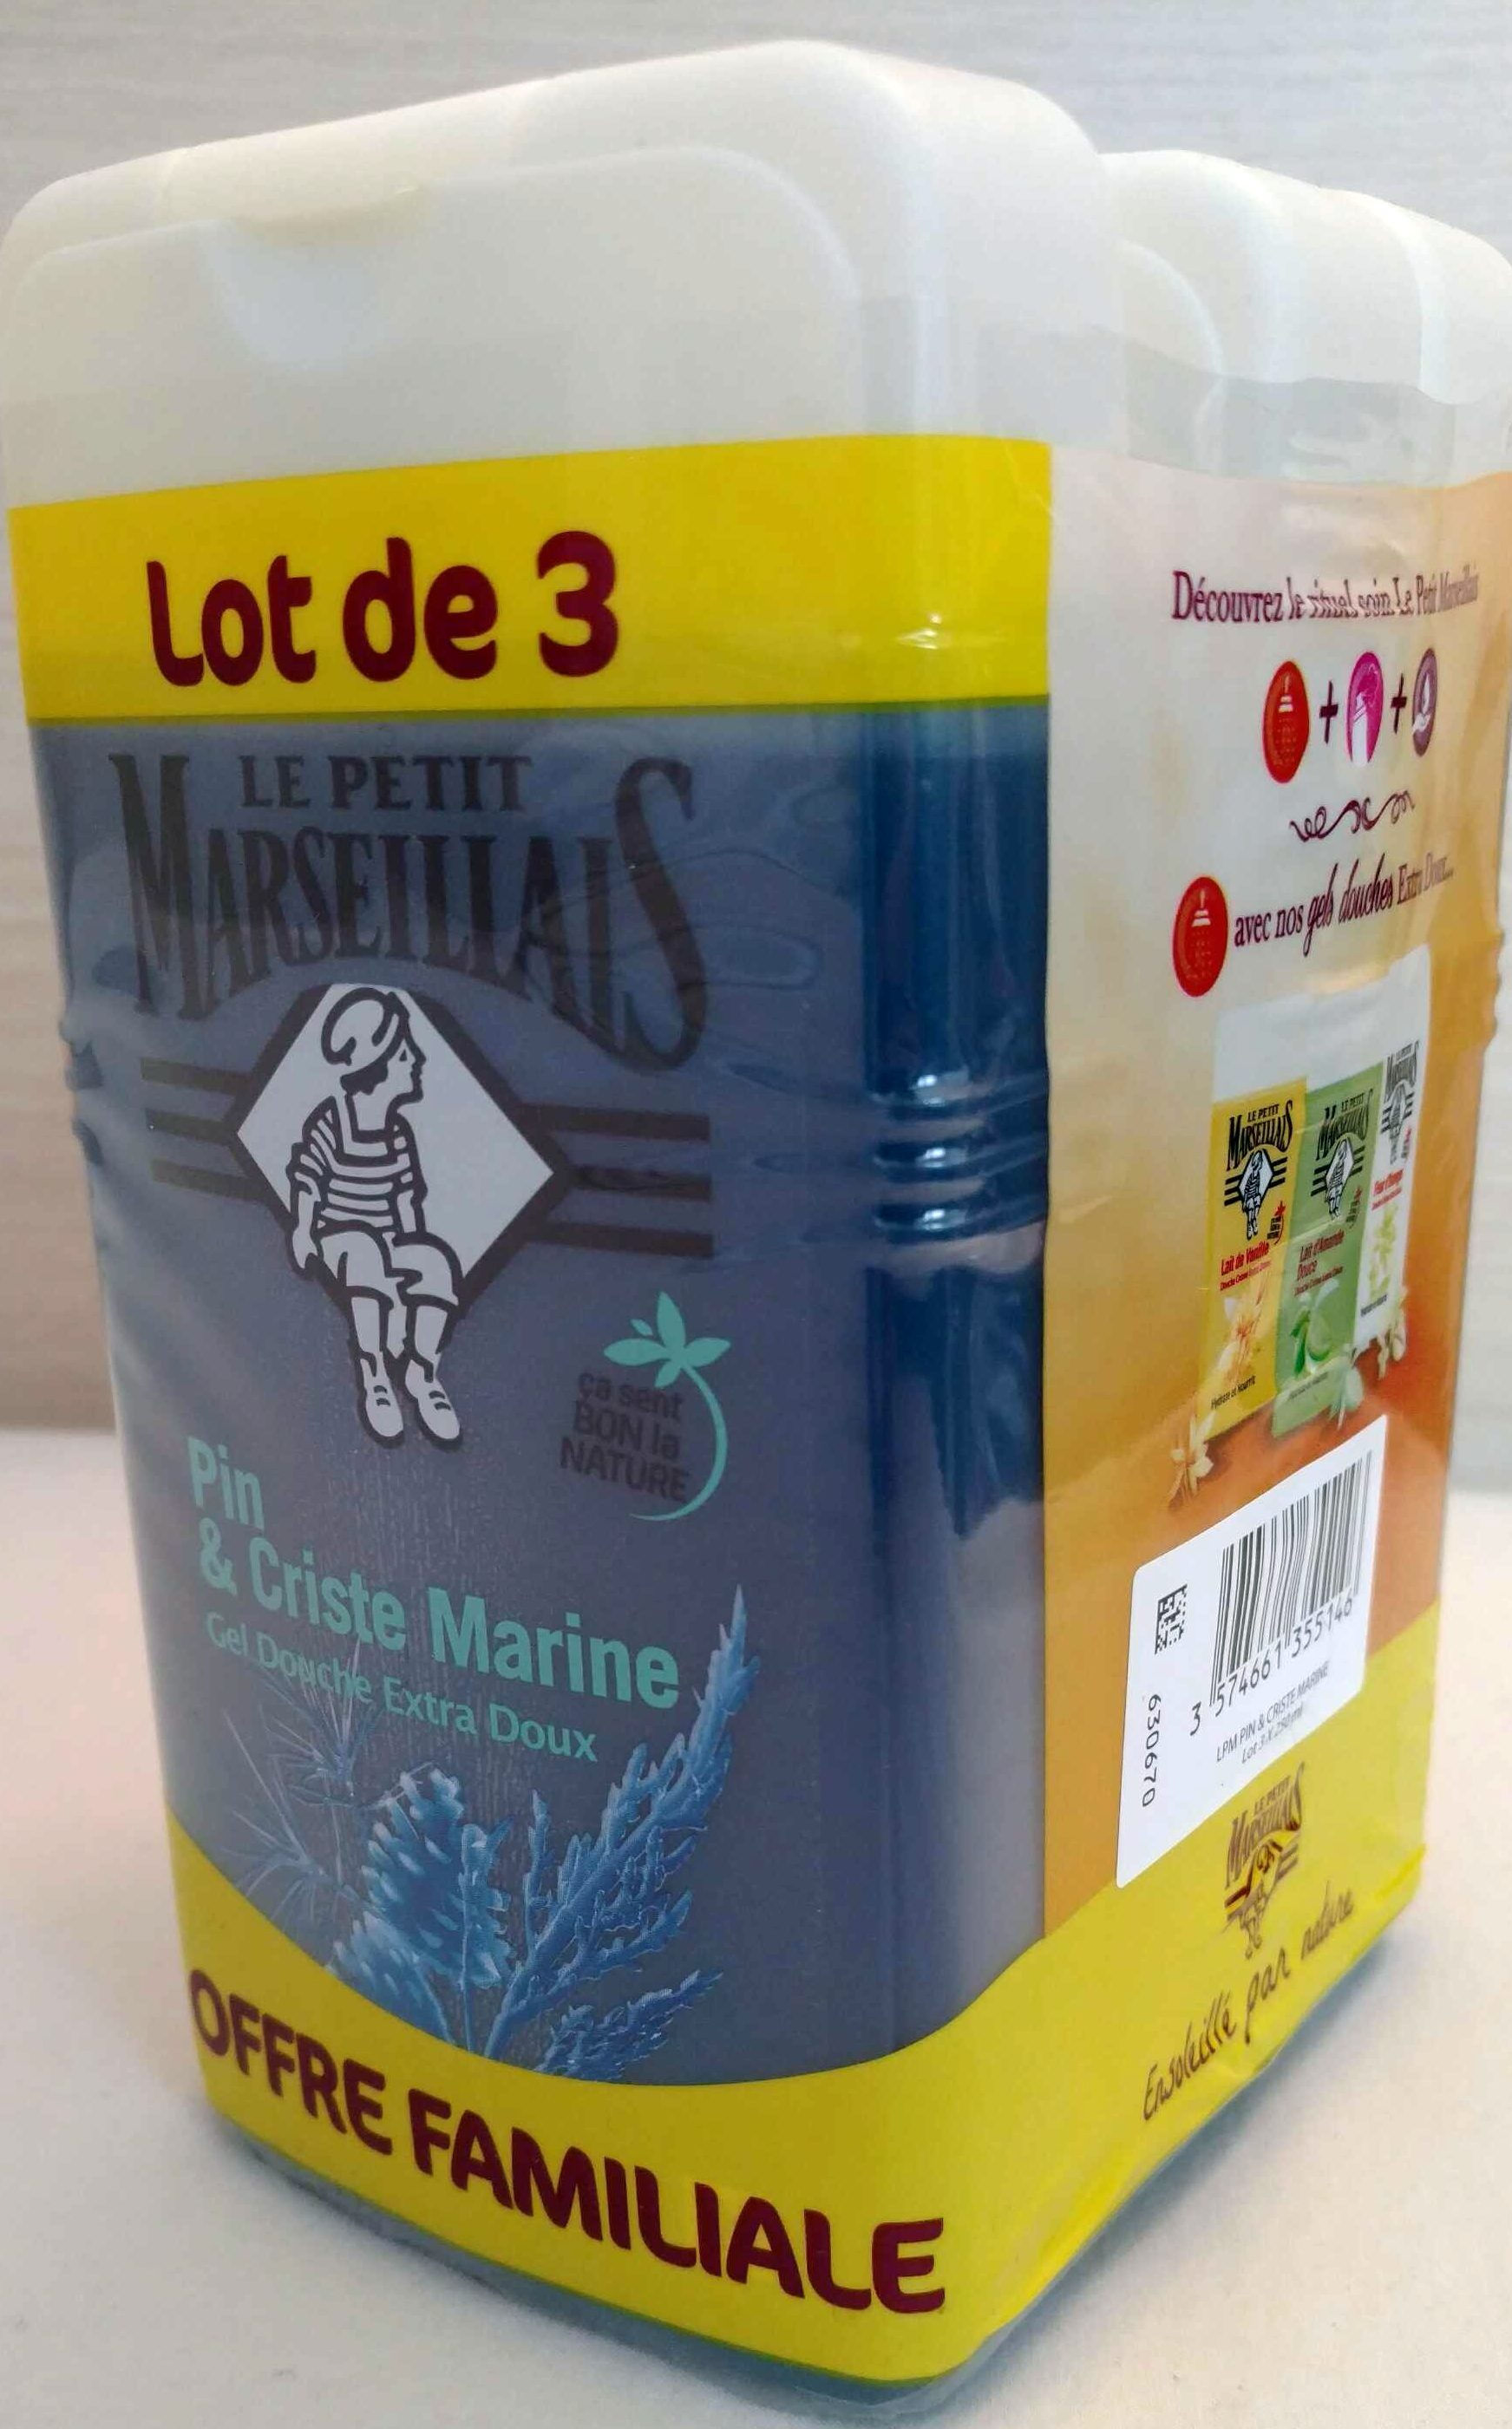 Pin & Criste Marine (lot de 3) - Product